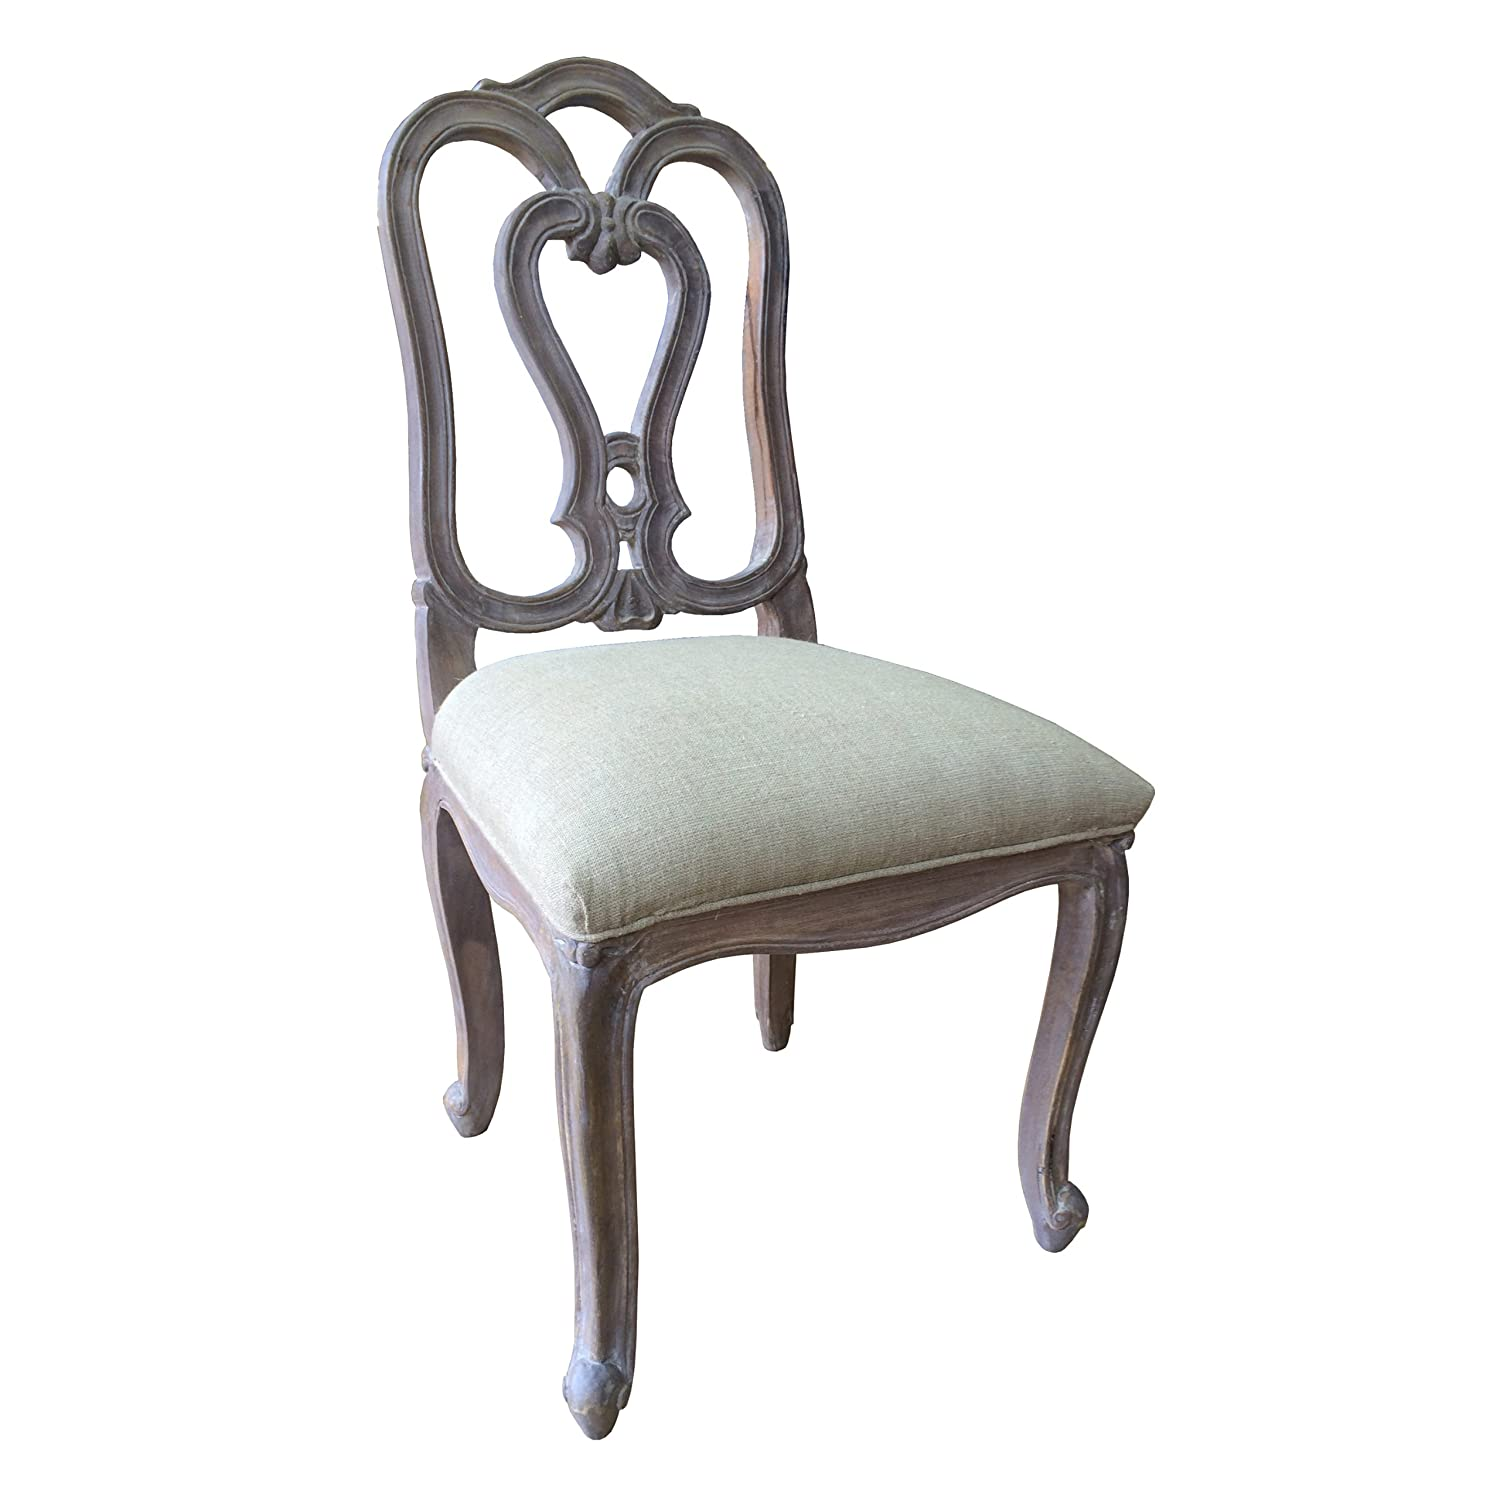 Matching Living Room And Dining Room Furniture Louis Style Square Back Chair For Dining Room Chair Upholstered